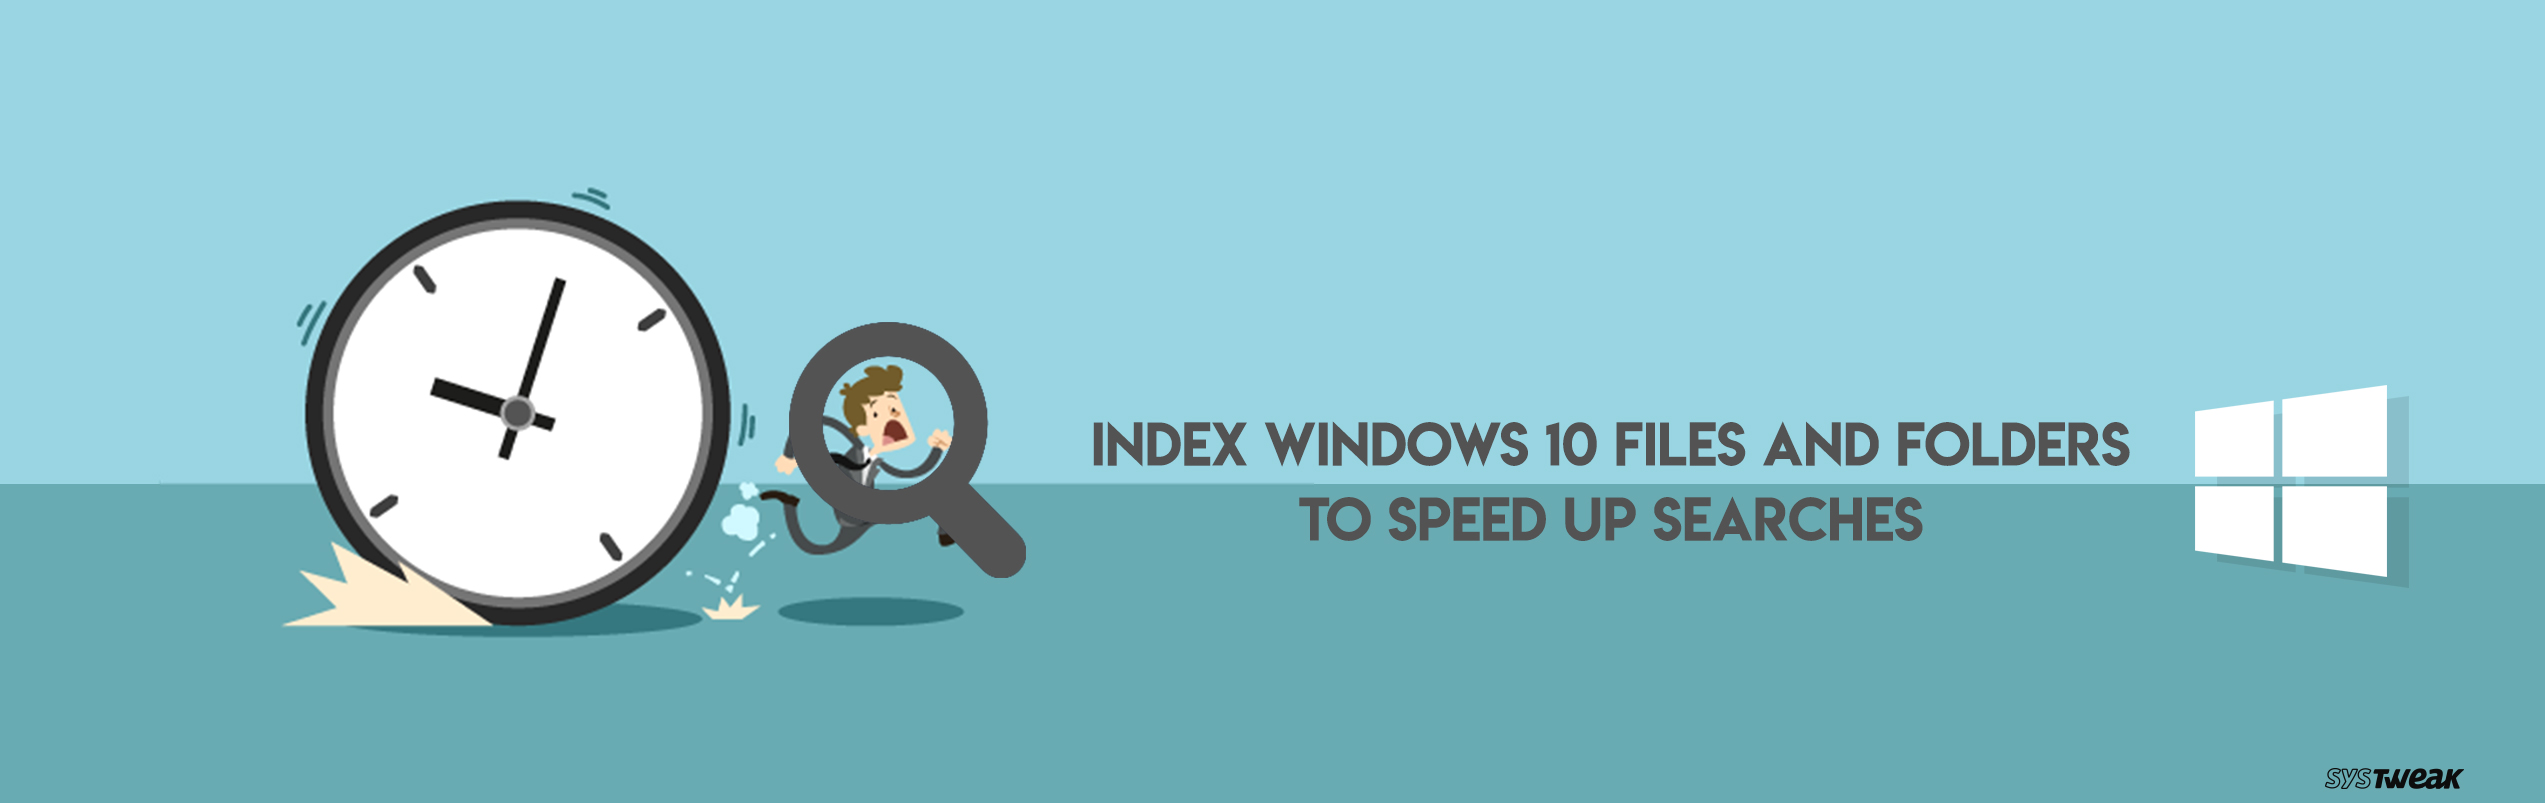 How To Index Files In Windows 10 To Get Faster Searches